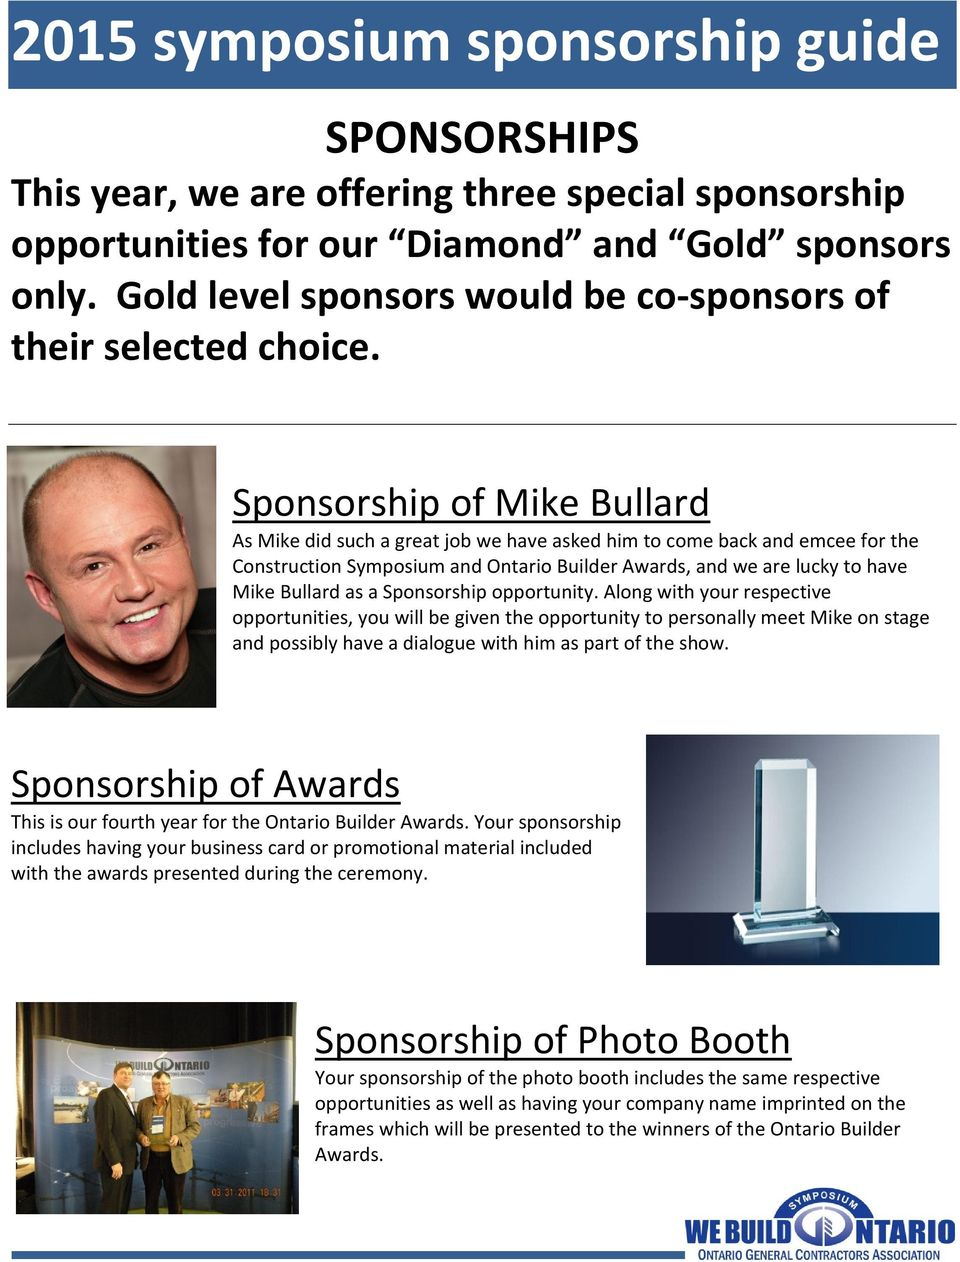 Sponsorship opportunity. Along with your respective opportunities, you will be given the opportunity to personally meet Mike on stage and possibly have a dialogue with him as part of the show.